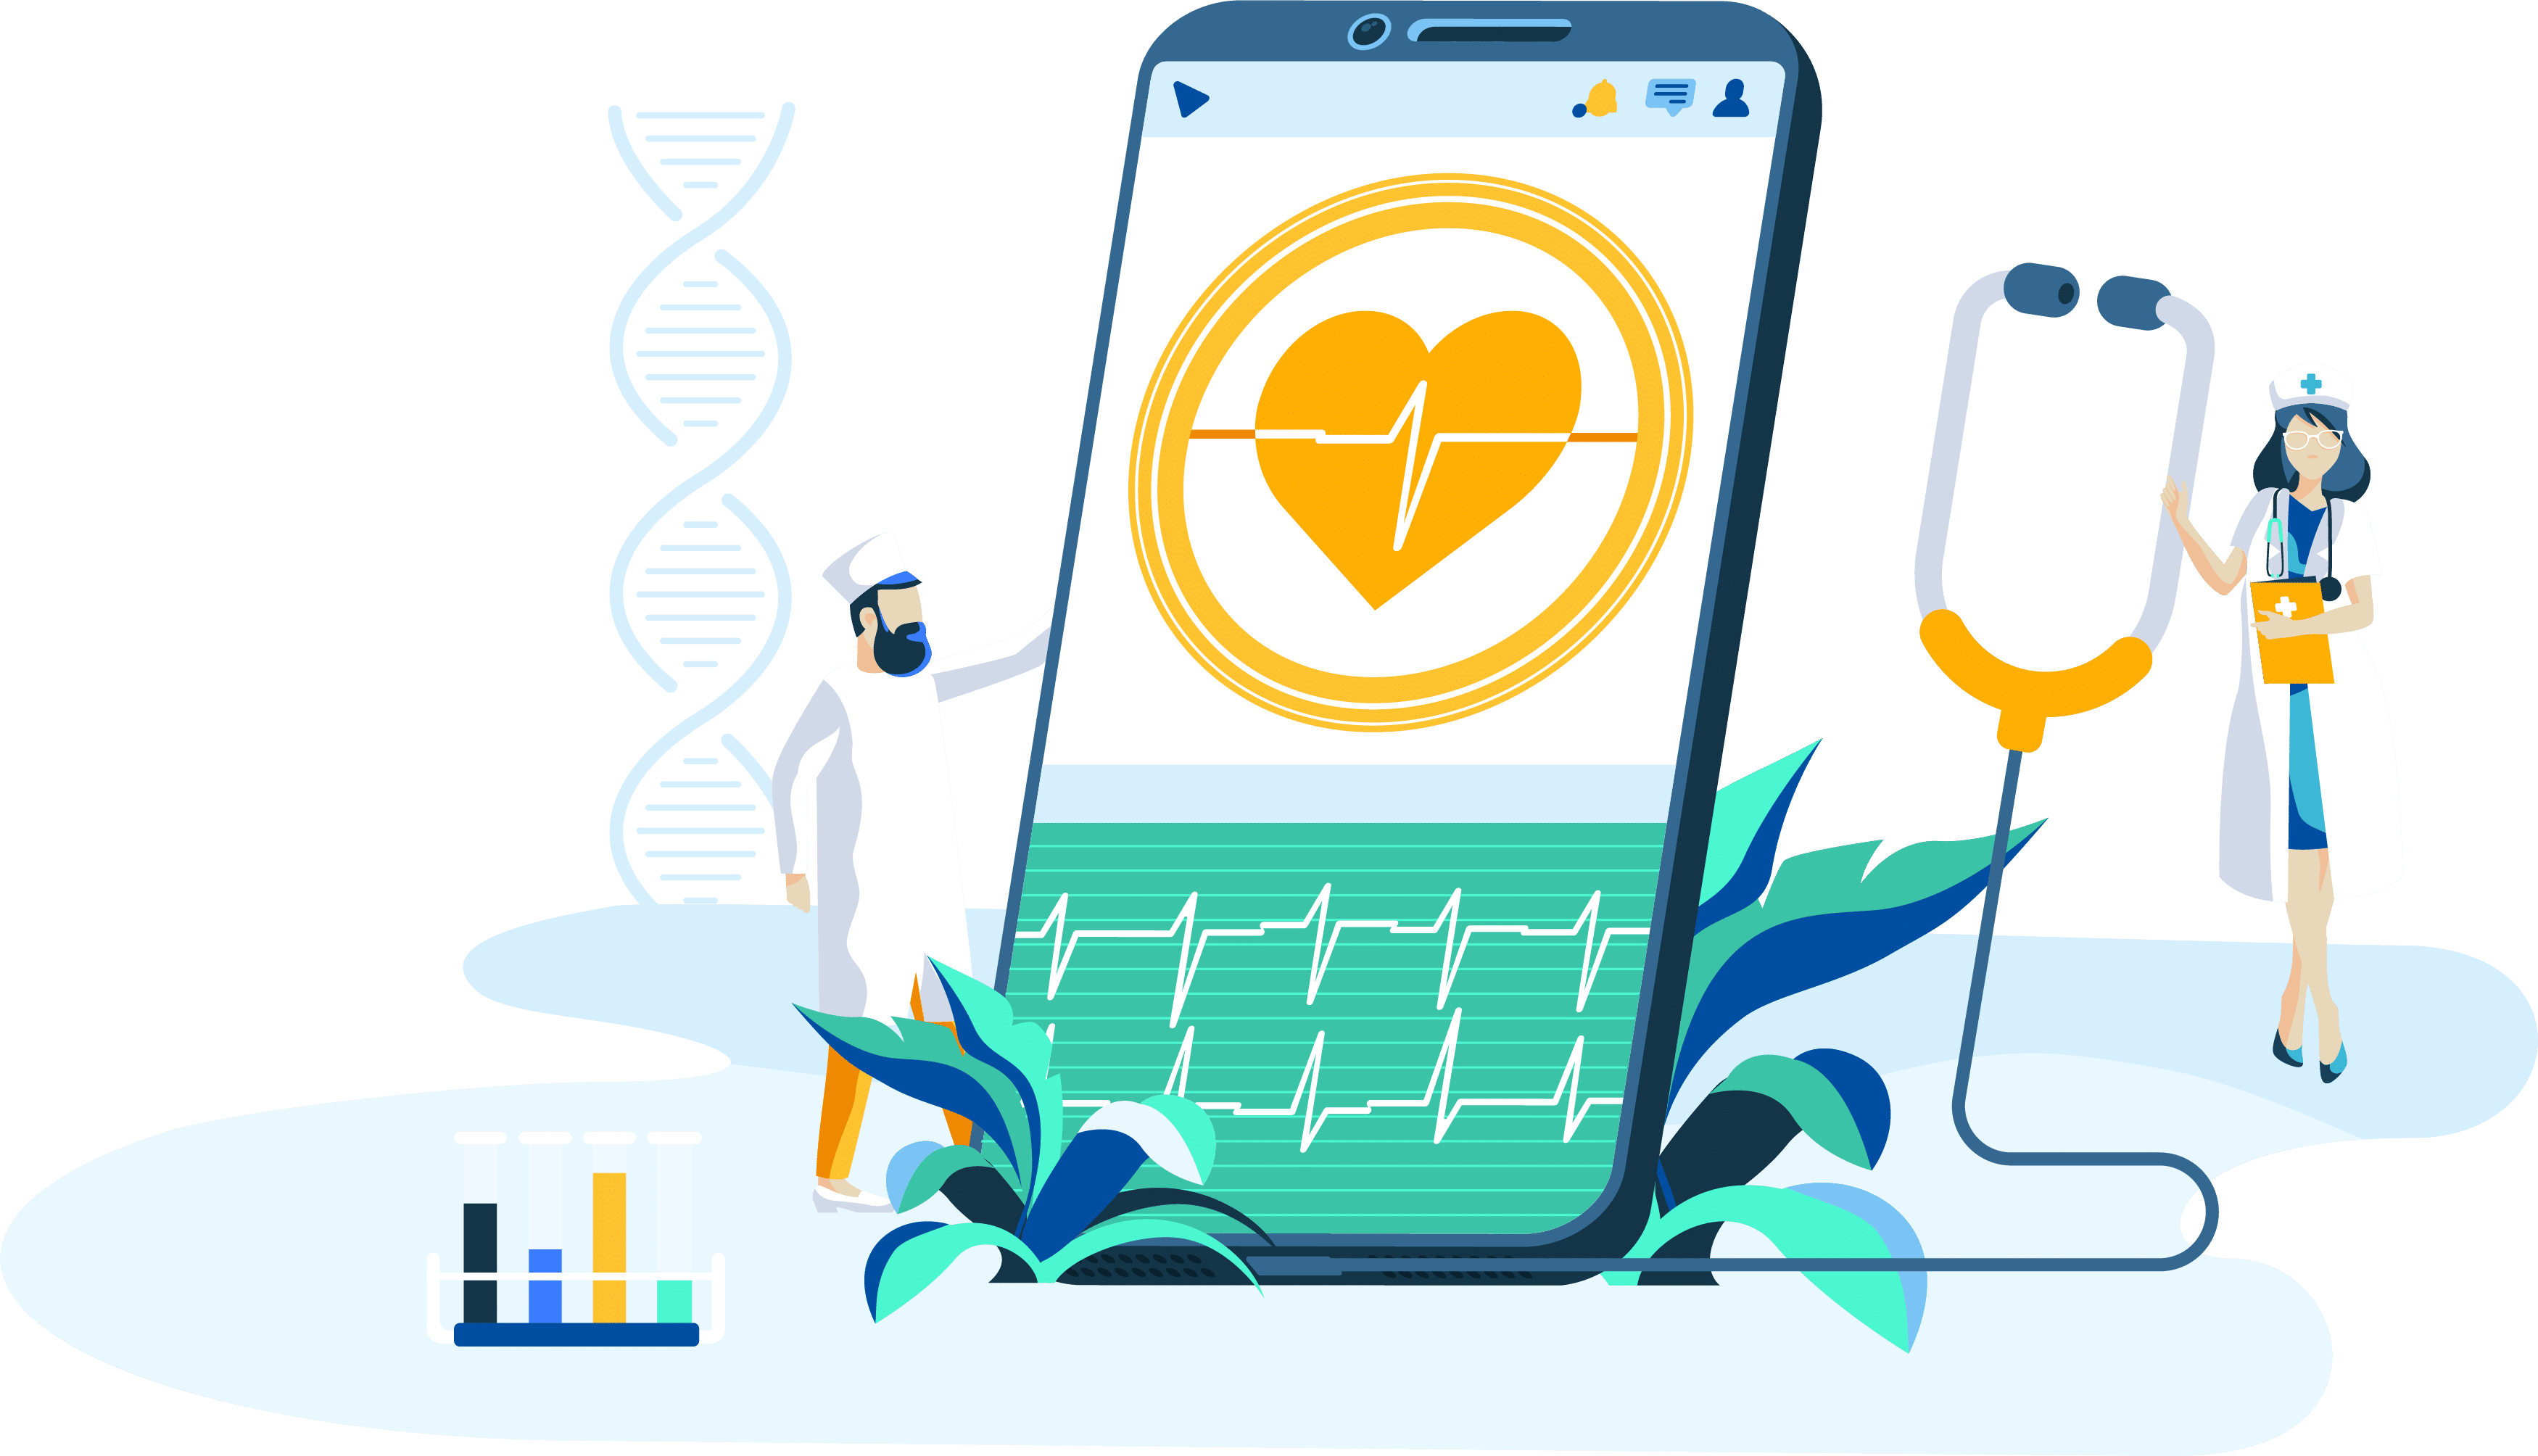 Blockchain in Healthcare Illustration - IIB Council Blockchain Blog